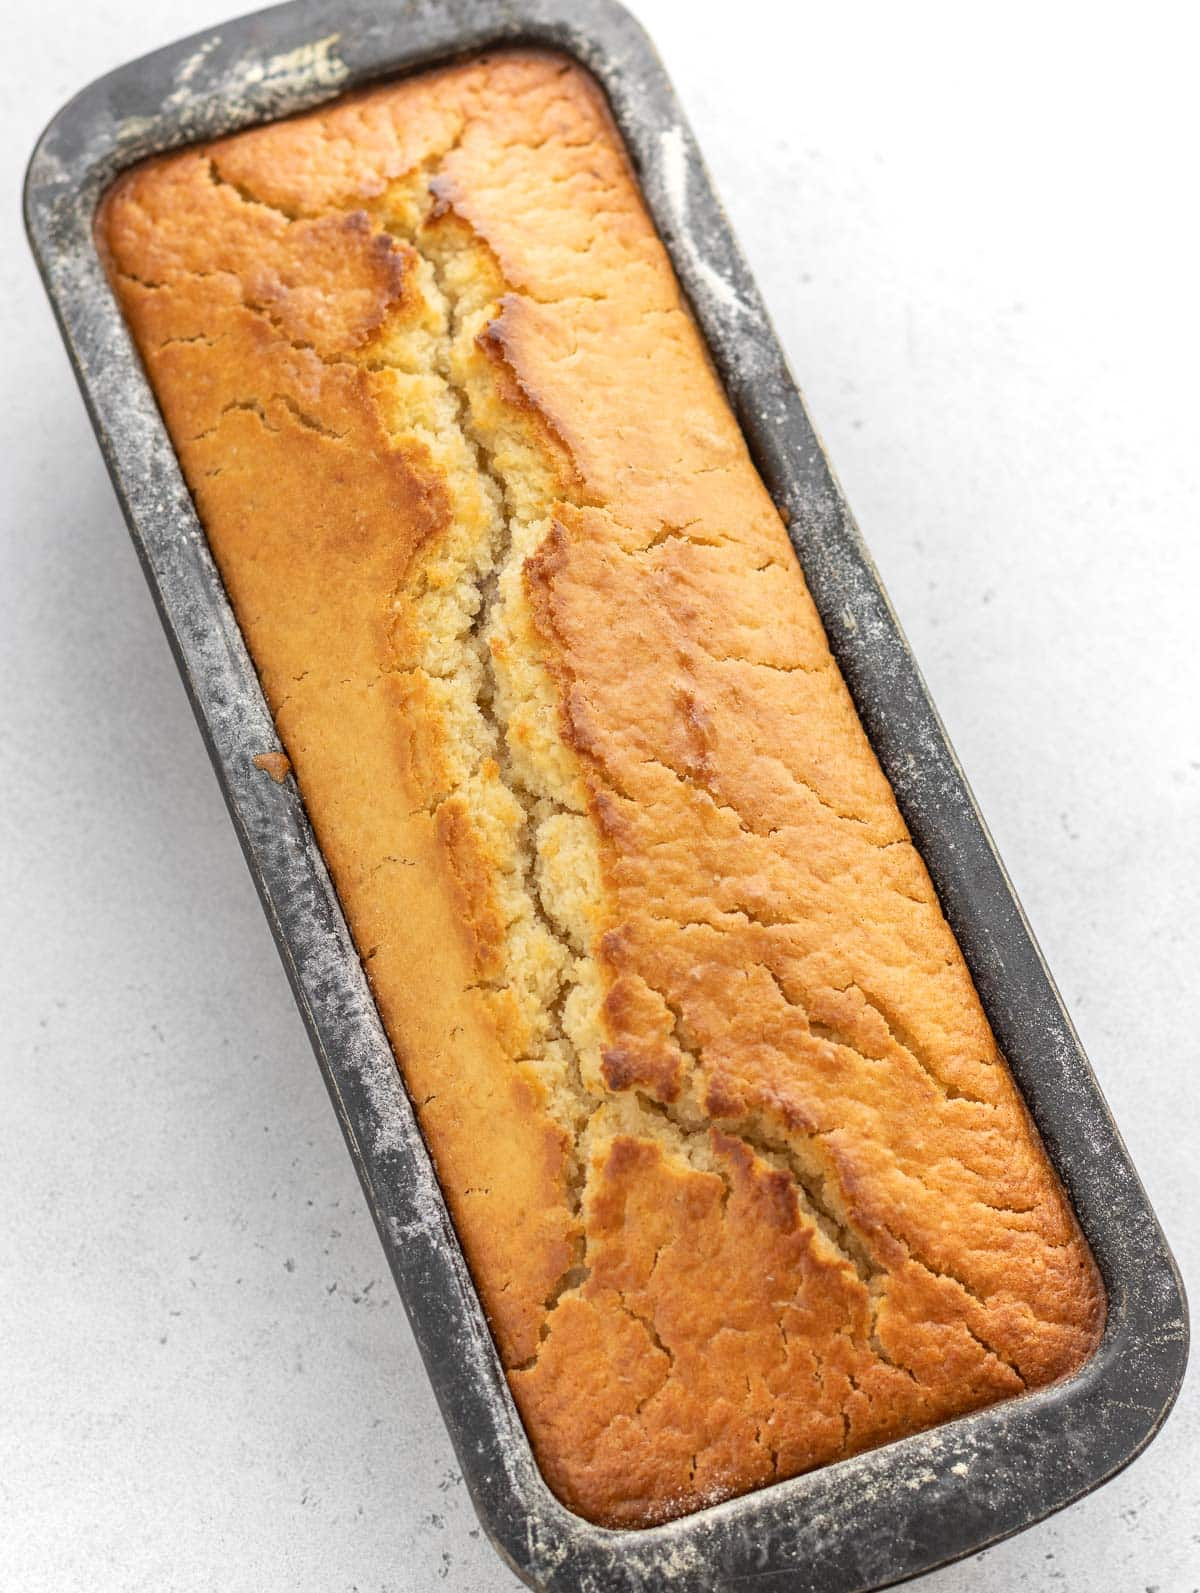 loaf pan 11 x 5 inches